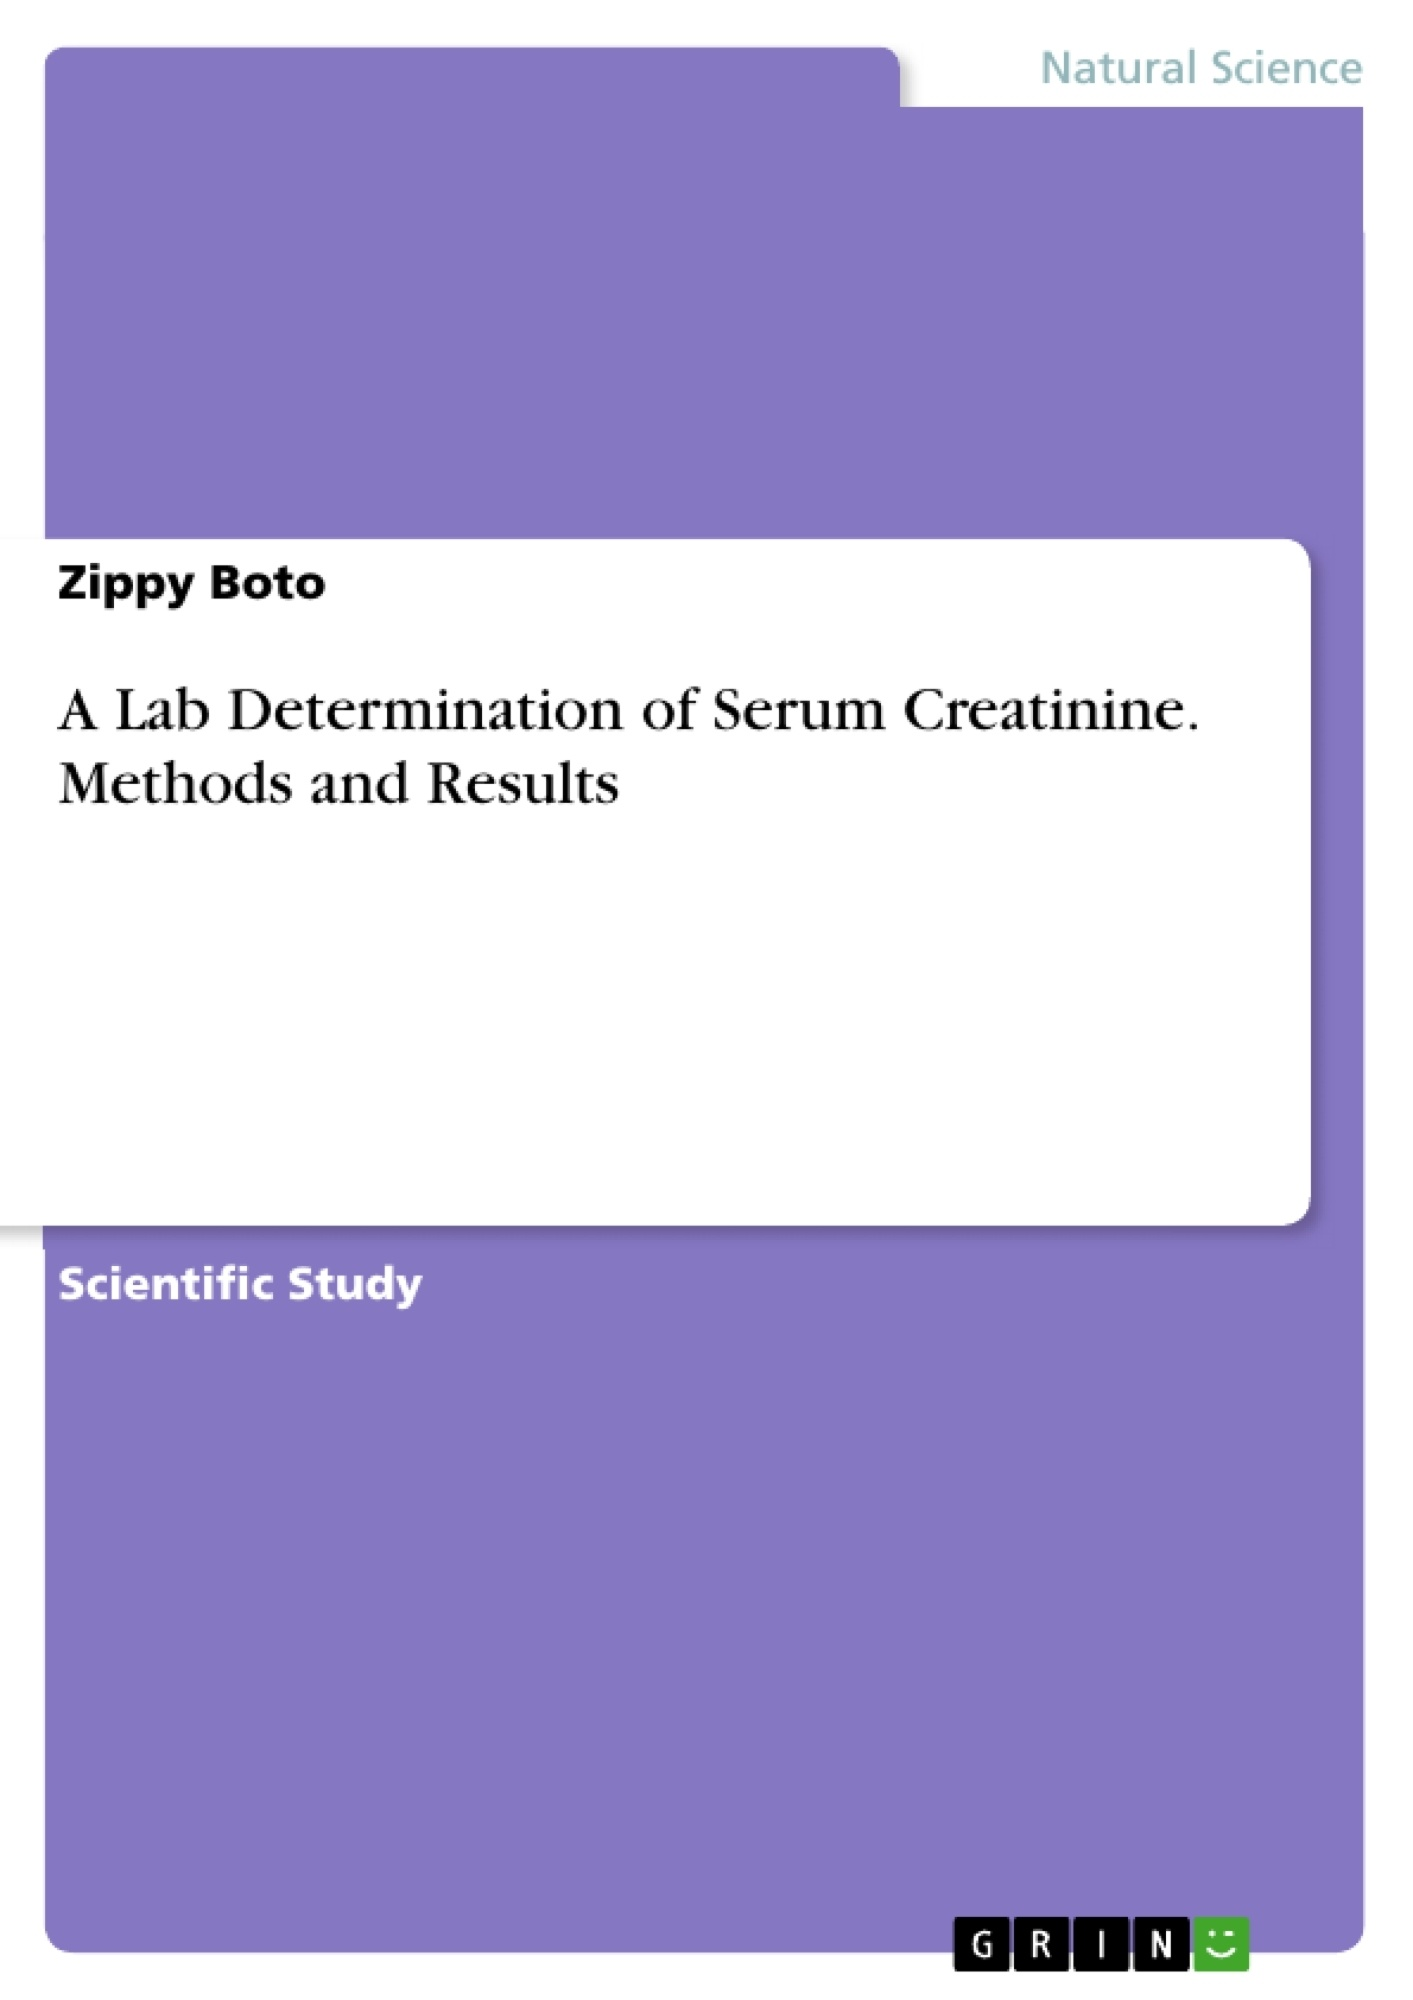 Title: A Lab Determination of Serum Creatinine. Methods and Results